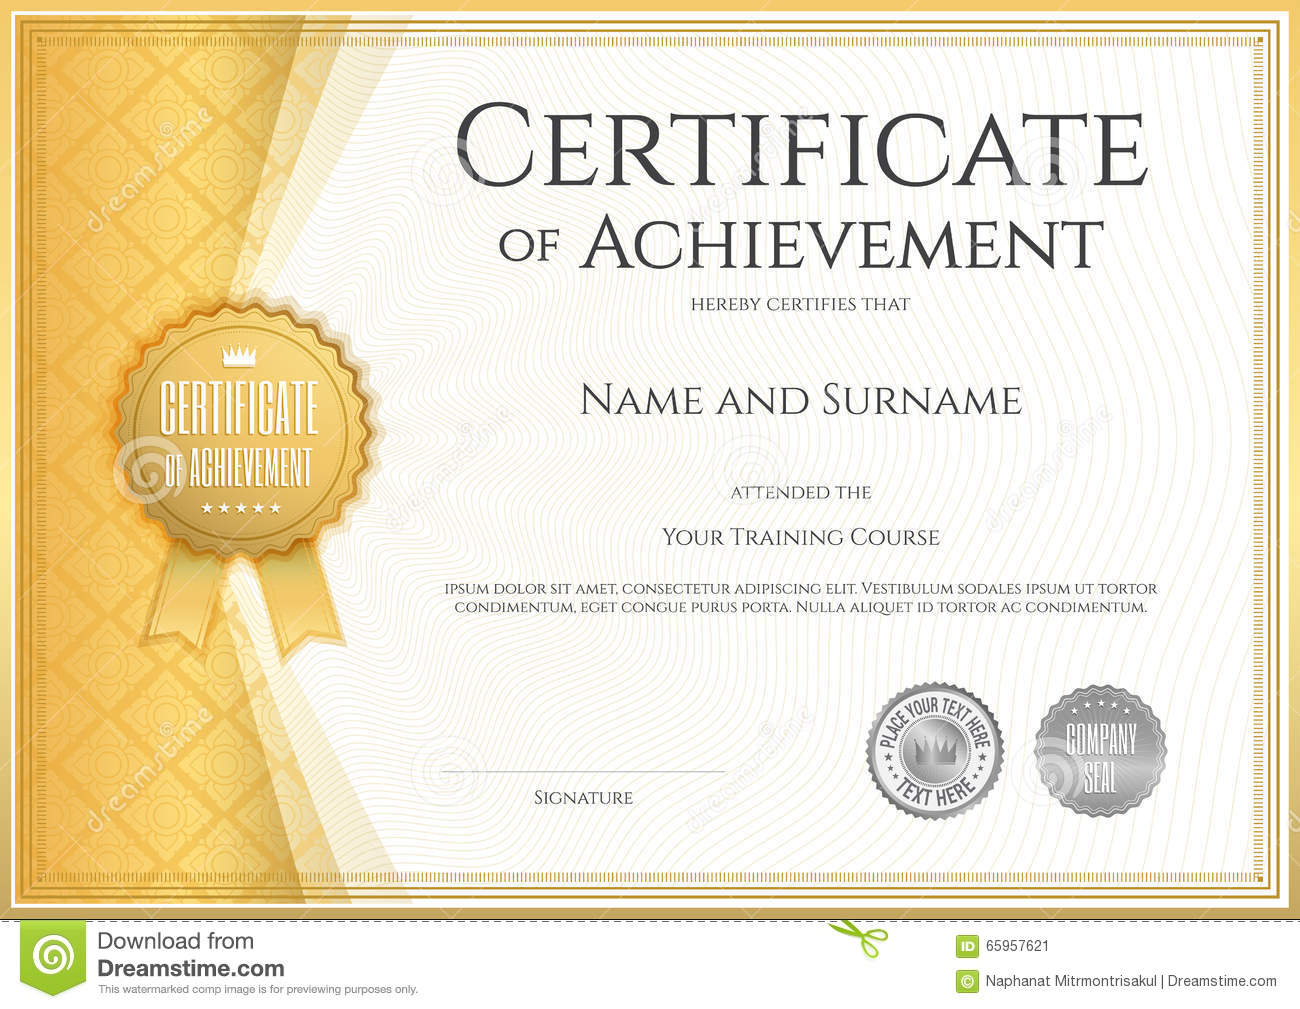 Certificate Of Award Template Word Free With Achievement Templates - Free Printable Certificates Of Accomplishment